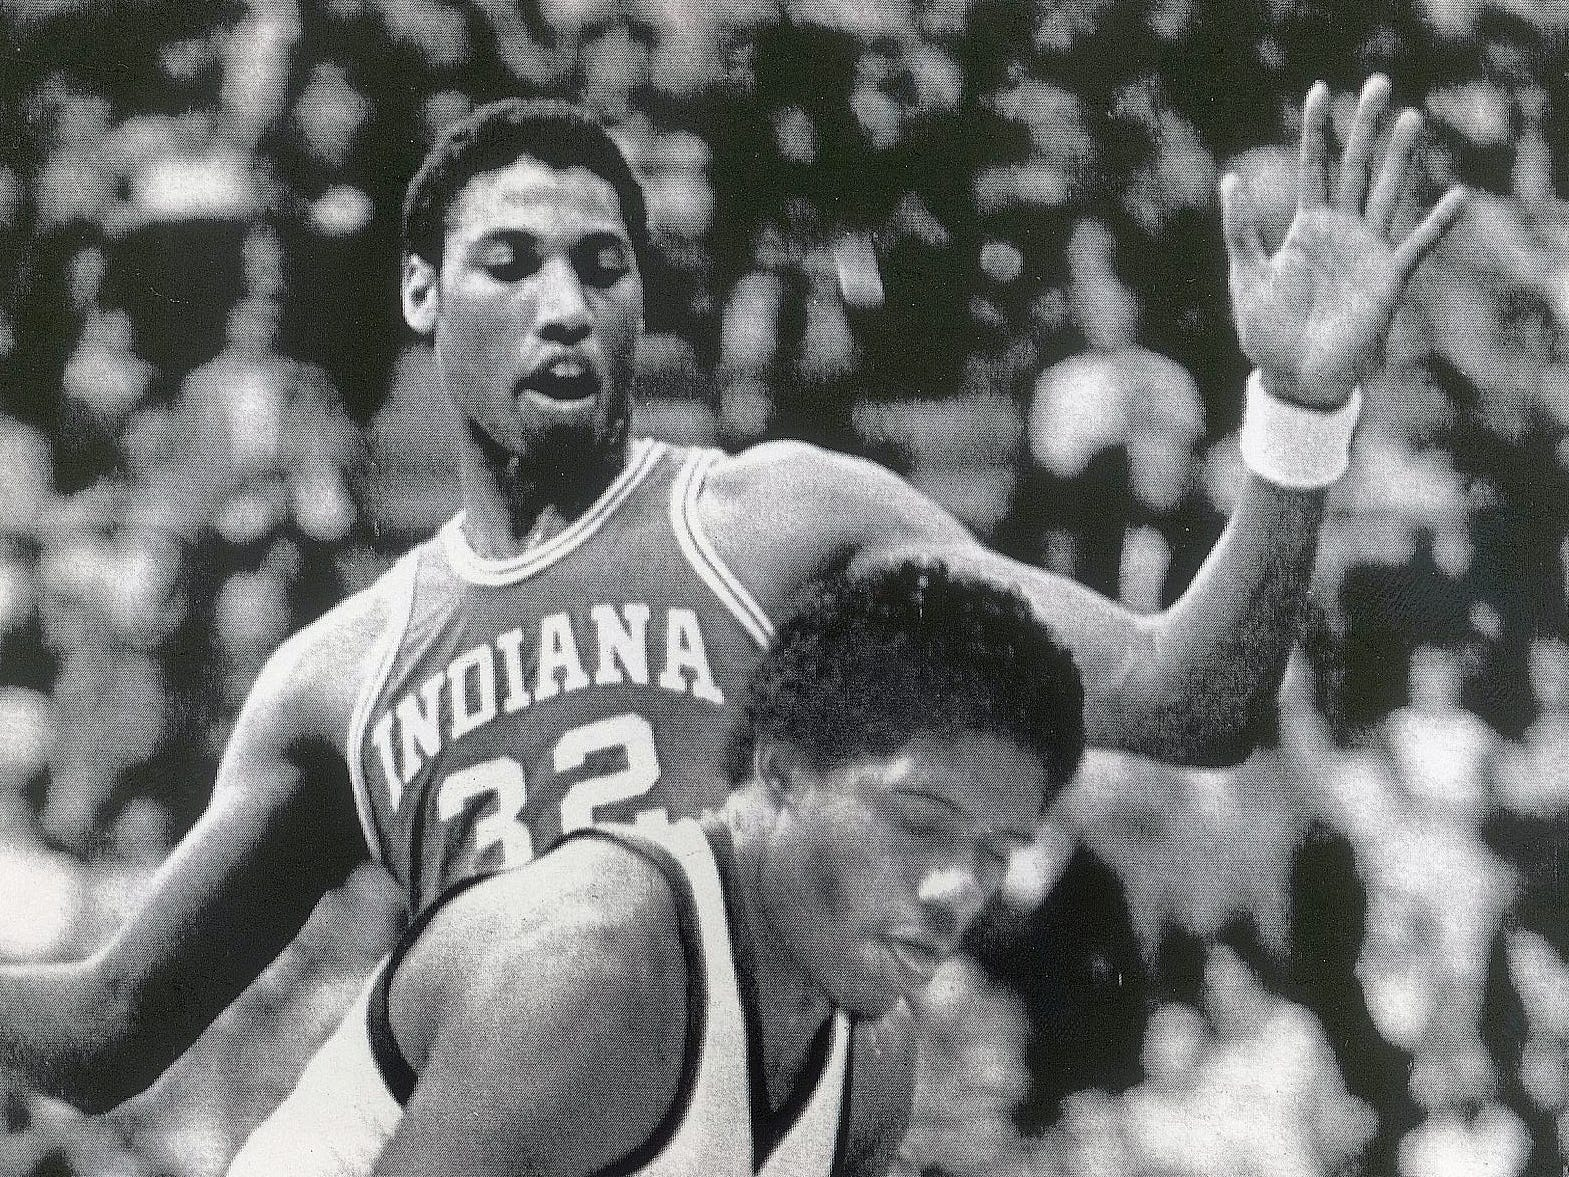 Michigan Sate's Jay Vincent tries to control the basketball under his basket while Indiana's Landon Turner defends him during the Big Ten game played March 7, 1981.